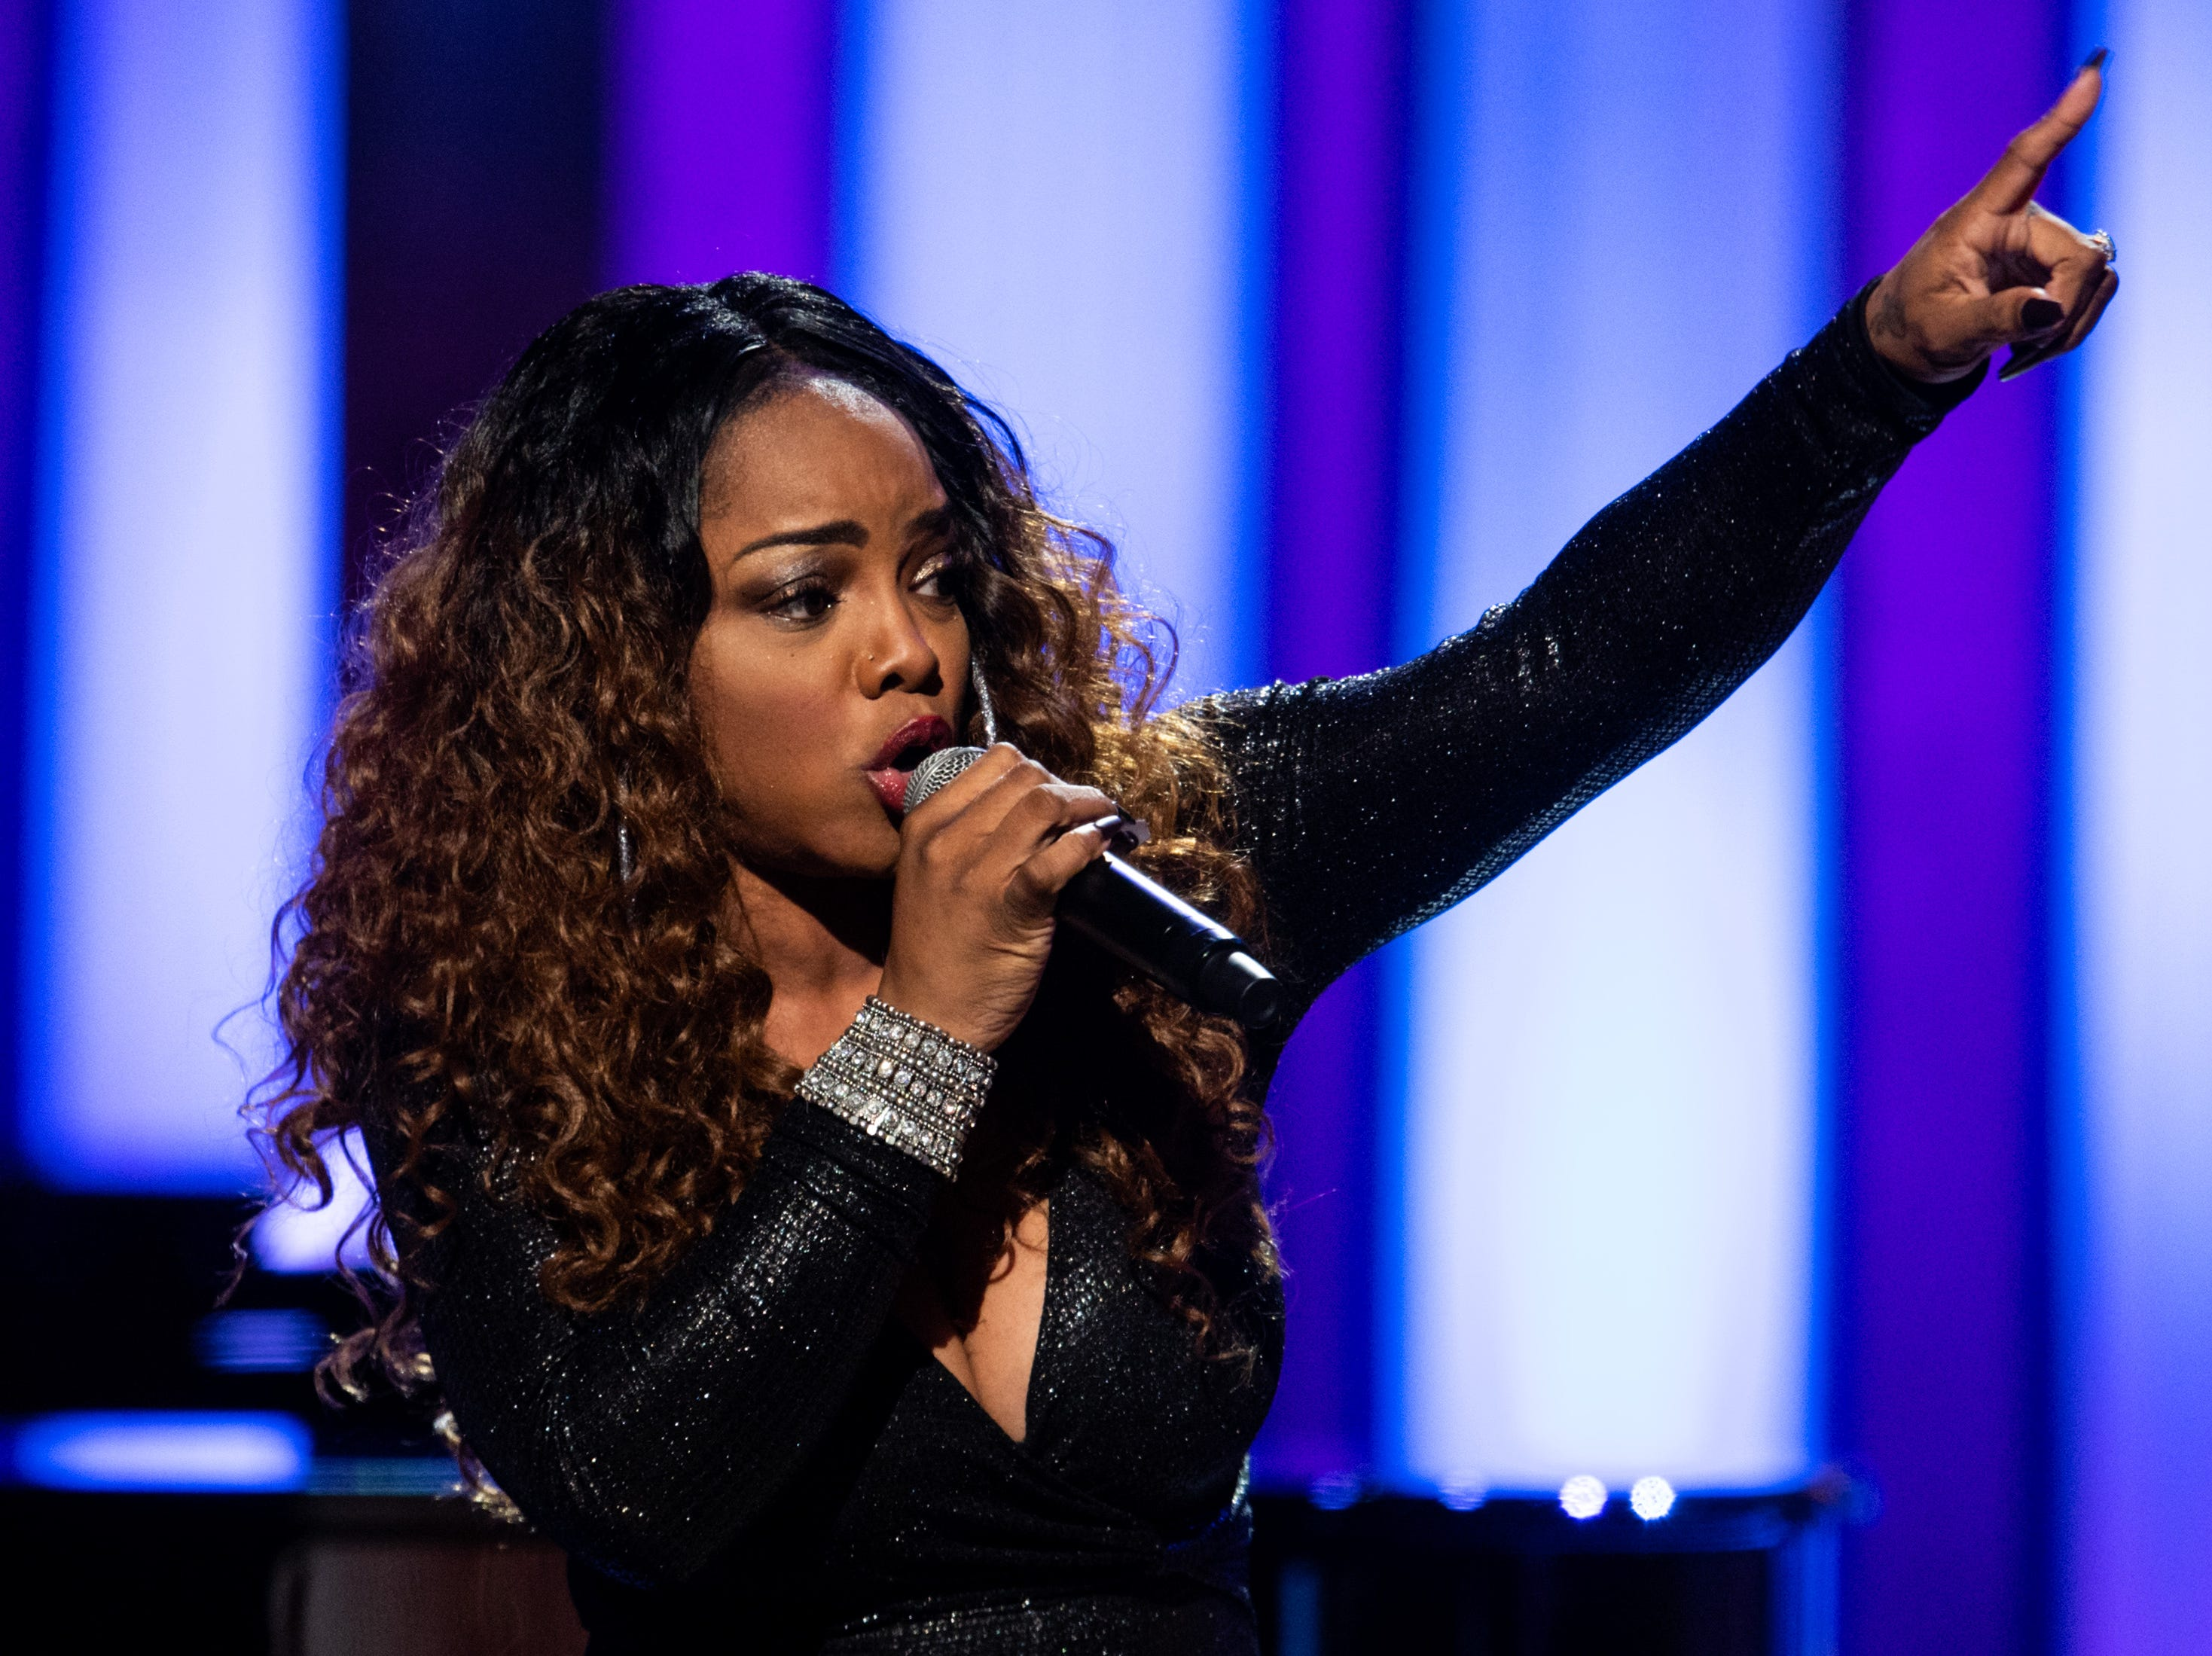 Leela James performs during the An Opry Salute to Ray Charles concert at The Grand Ole Opry in Nashville, Tenn., Monday, Oct. 8, 2018.